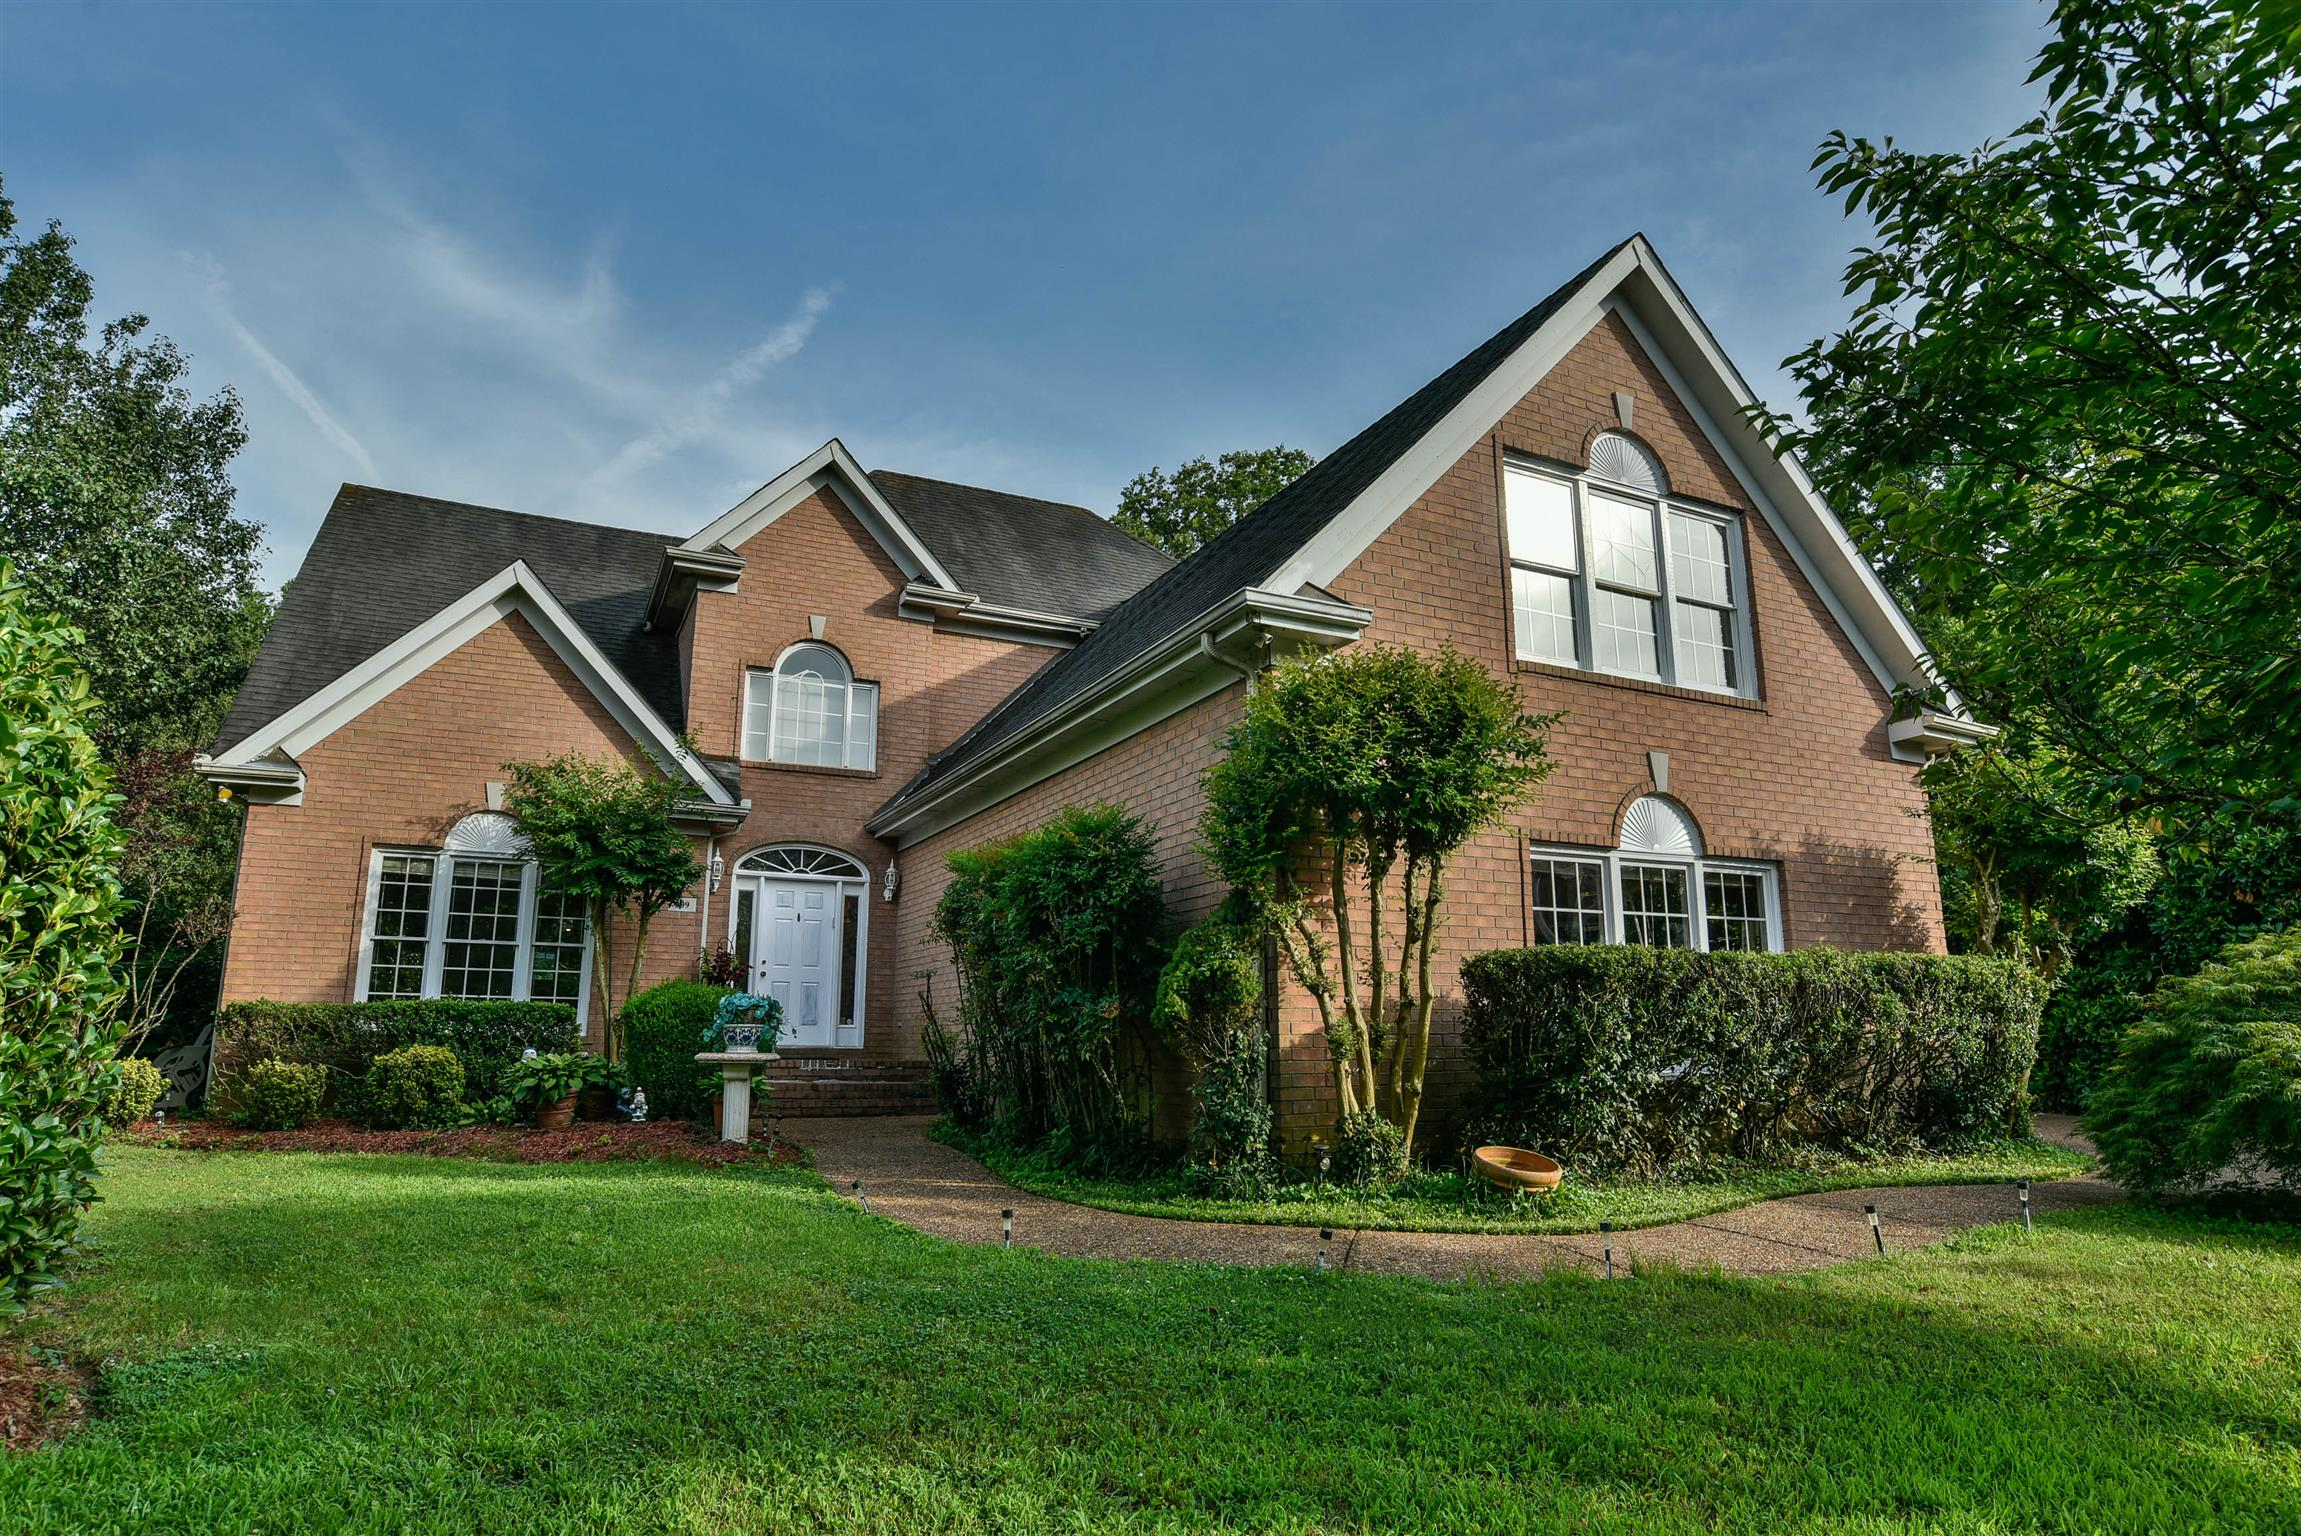 309 Turnberry Cir, Brentwood, TN 37027 - Brentwood, TN real estate listing